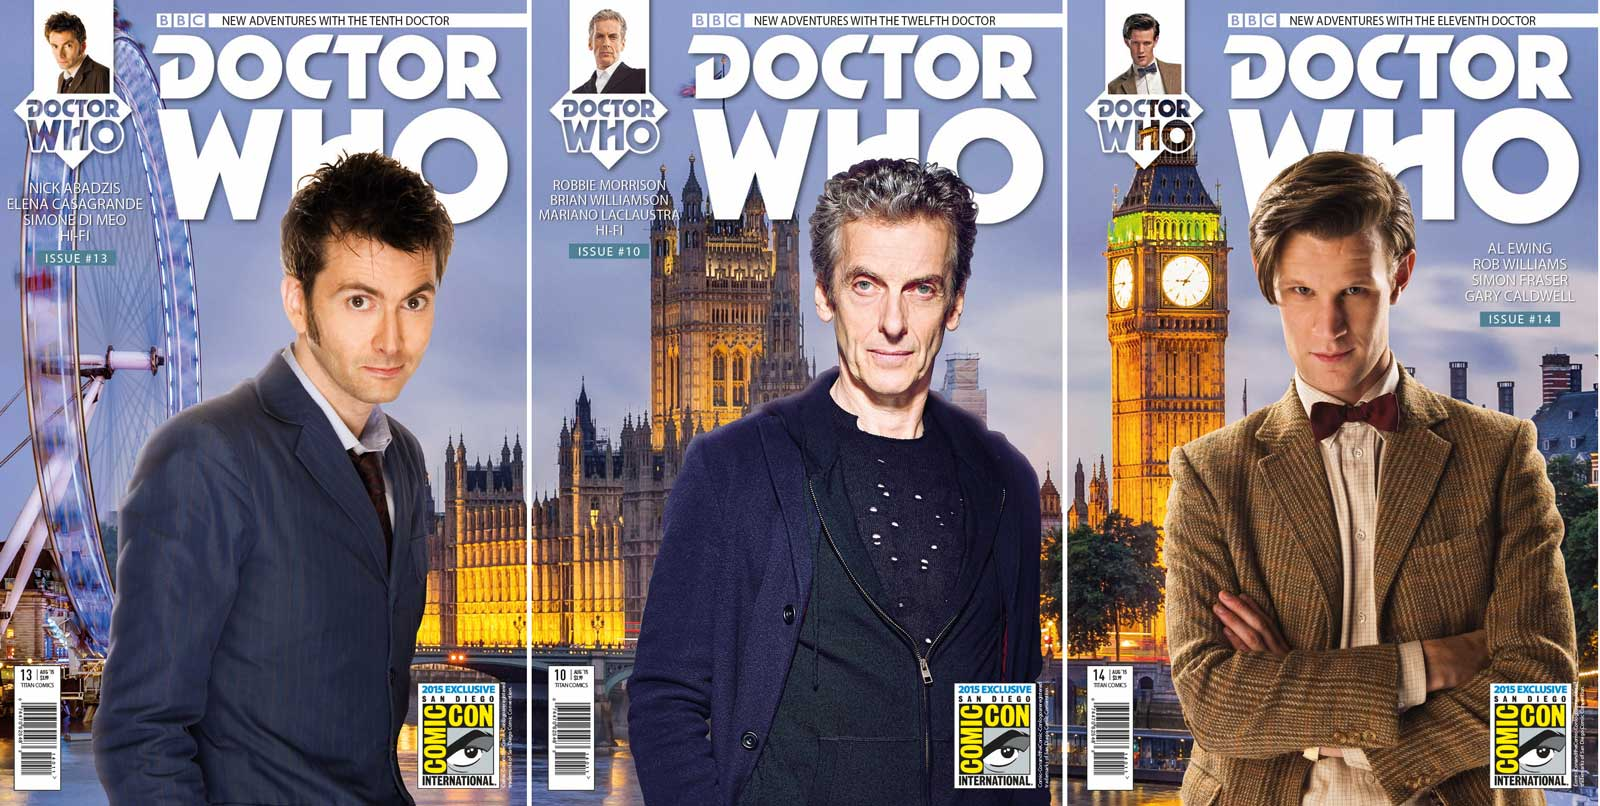 Doctor Who SDCC Triptych Exclusive Covers